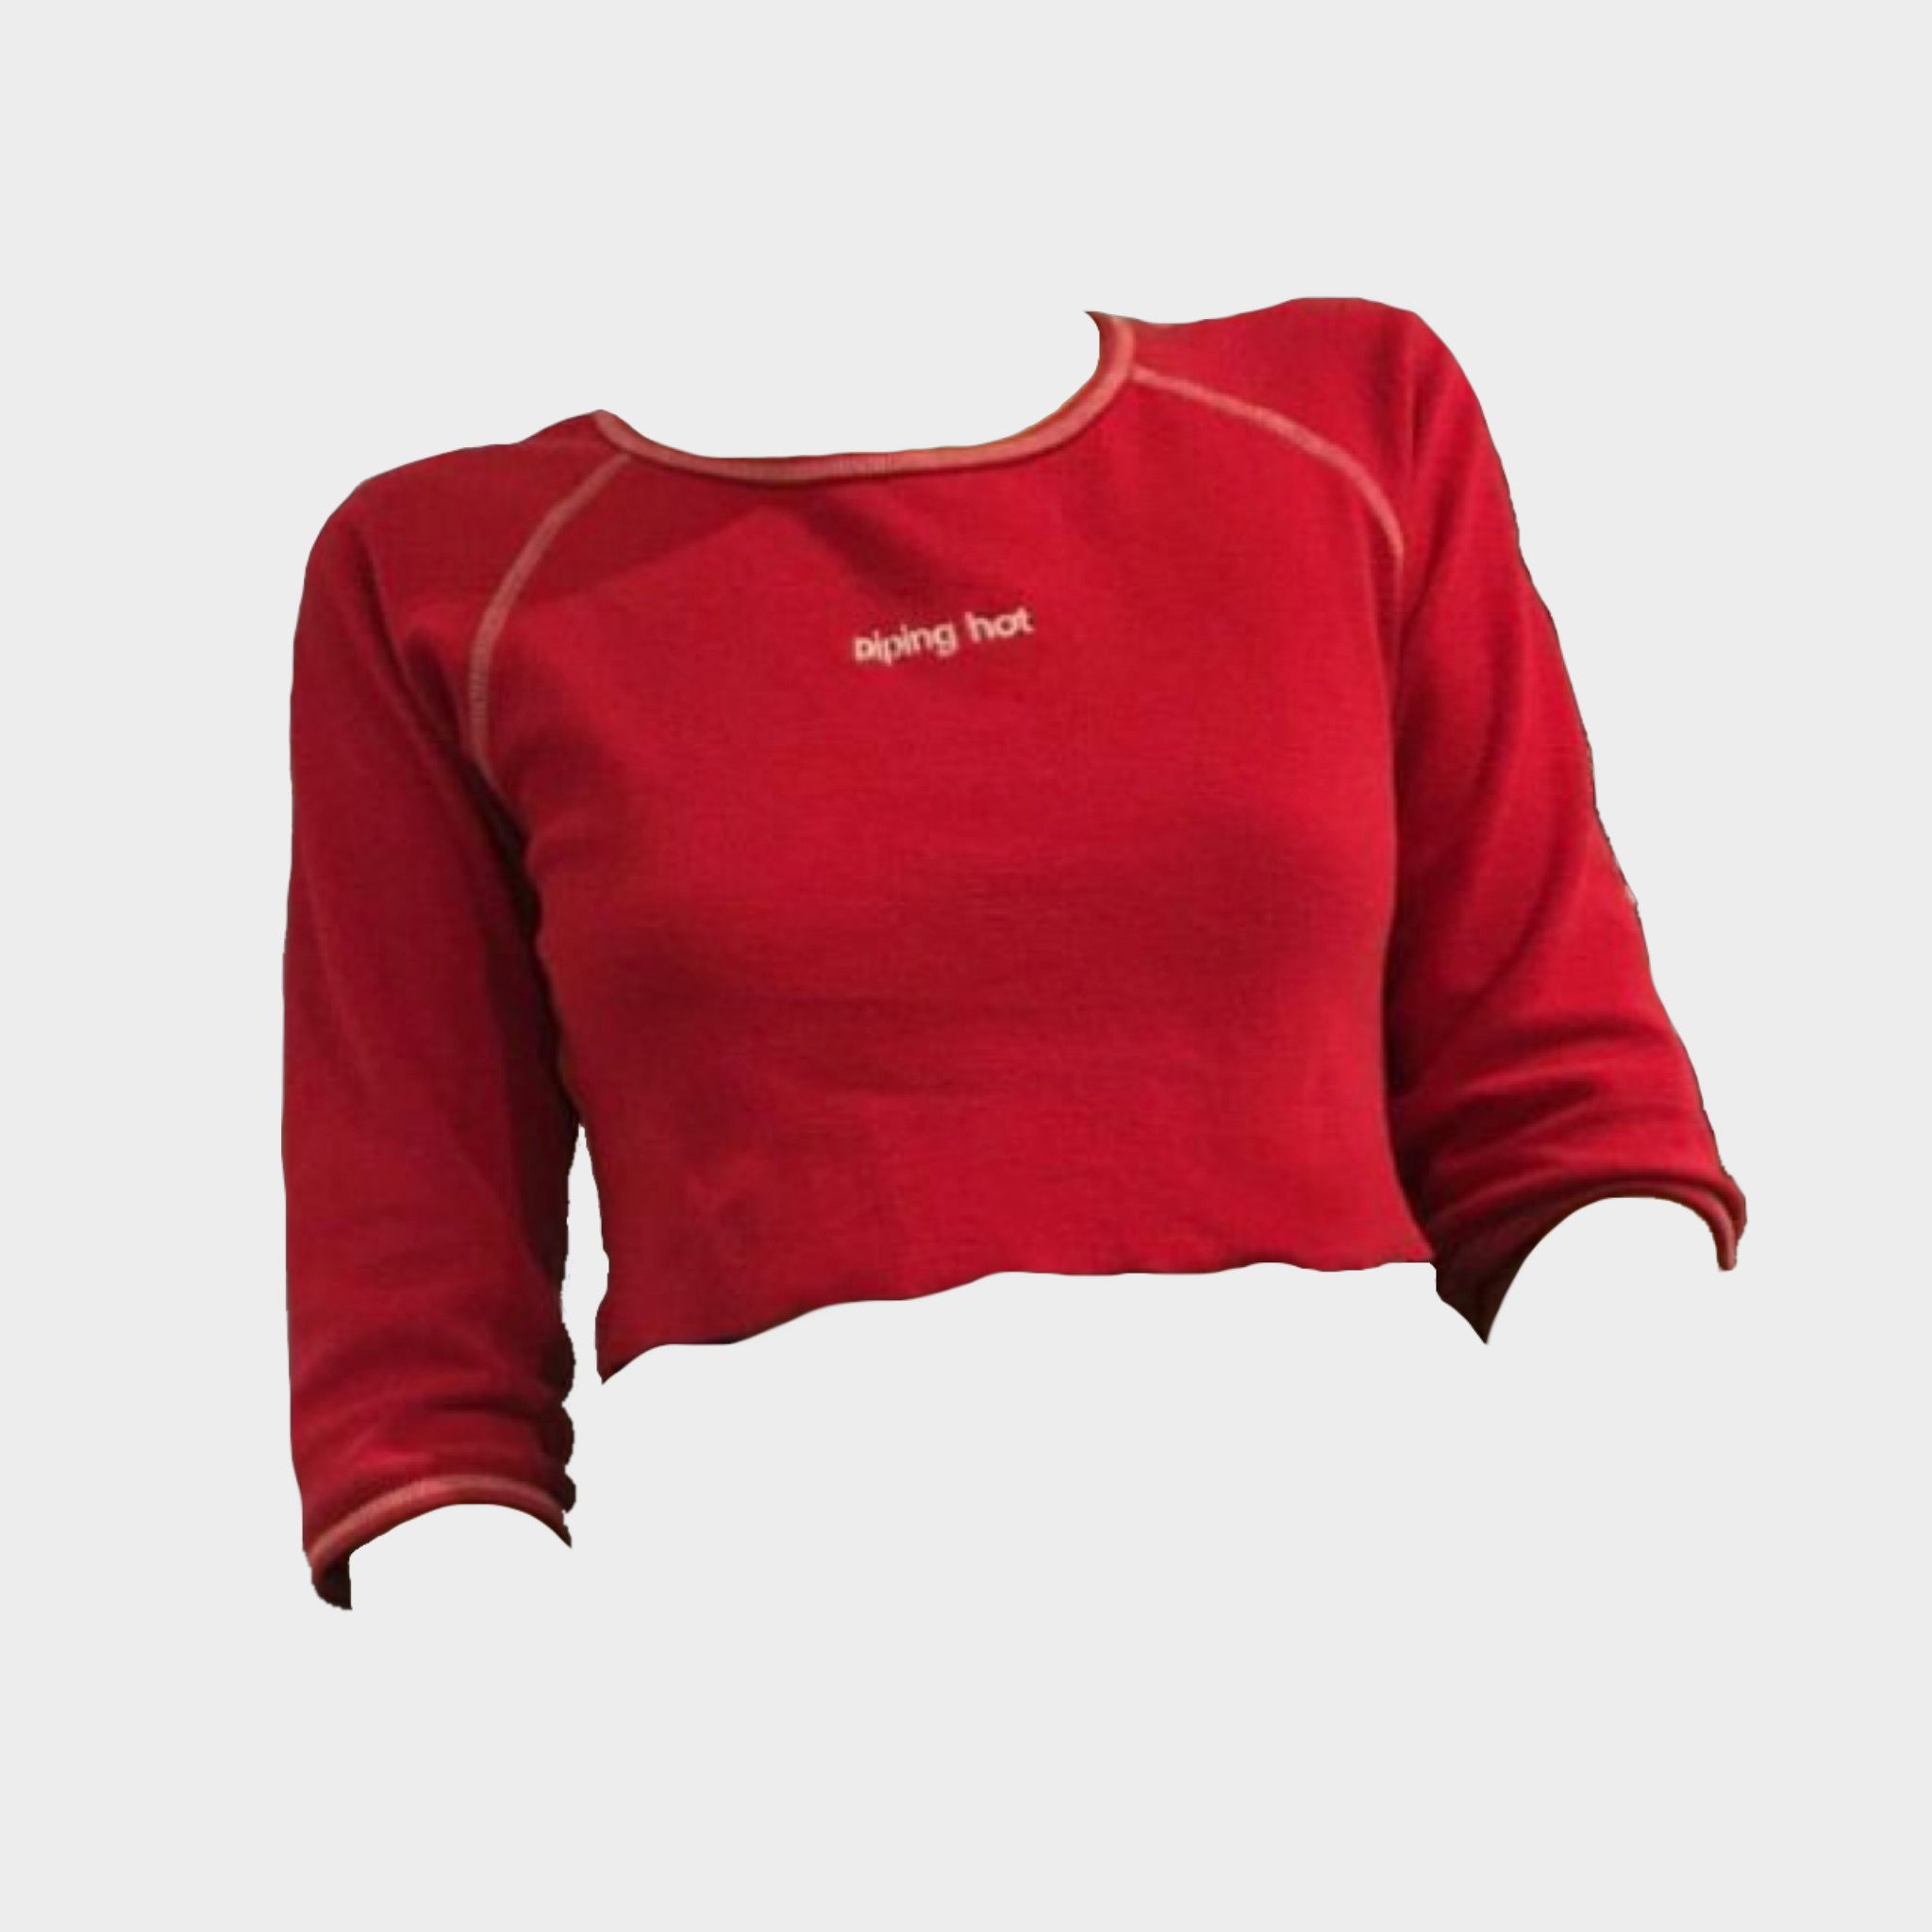 Red Long Sleeve Shirt Png For Mood Boards Polyvore Fillers Red Long Sleeve Shirt Red Outfit Long Sleeve Shirts